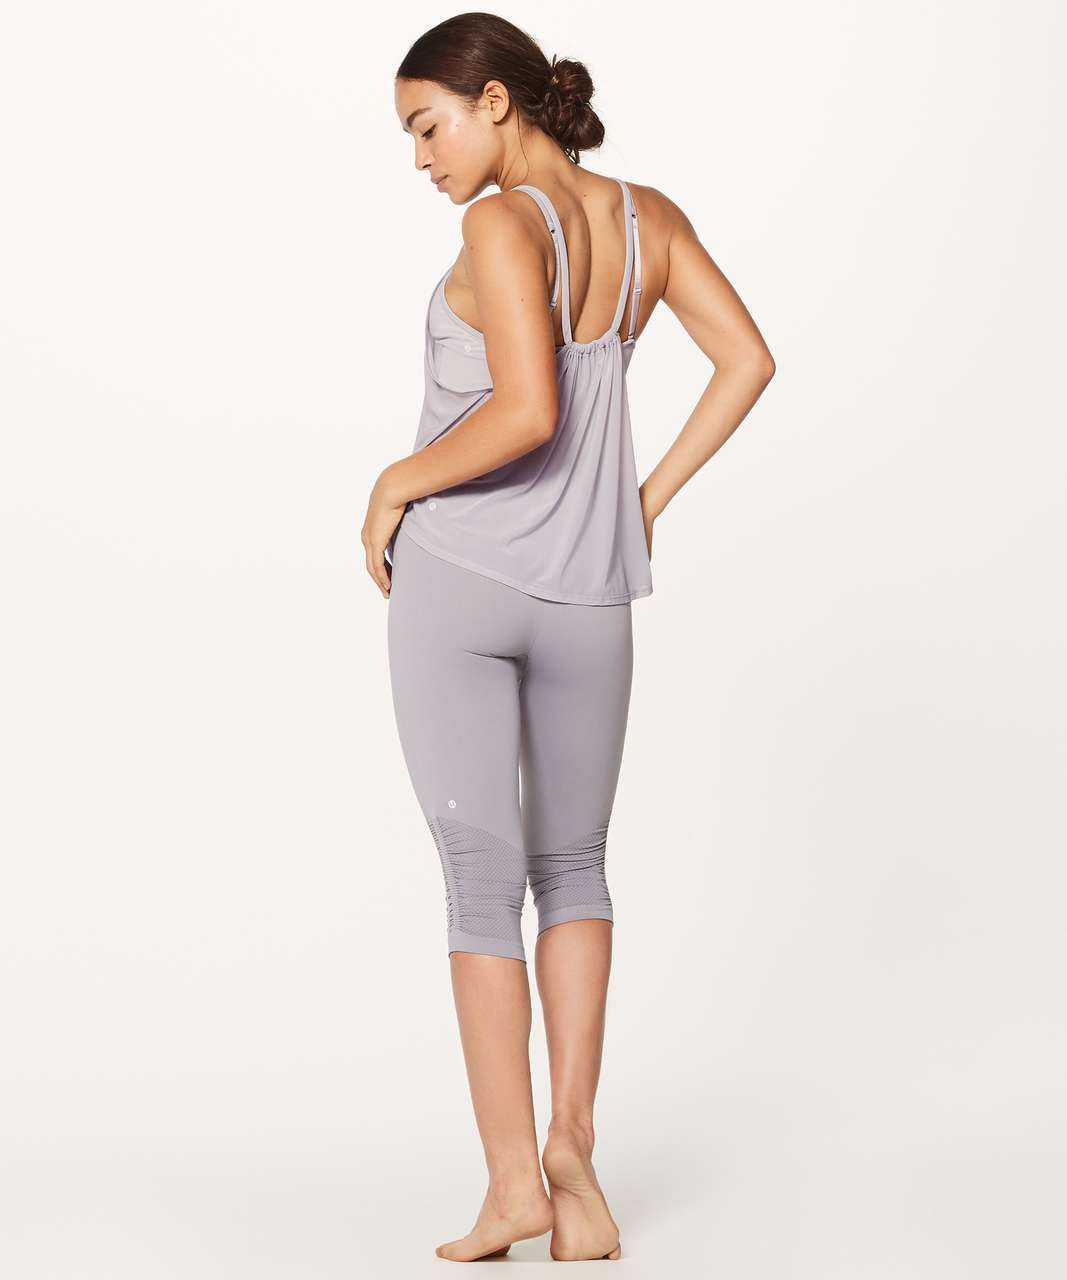 Lululemon Awakening Tank Taryn Toomey Collection - Faint Mauve